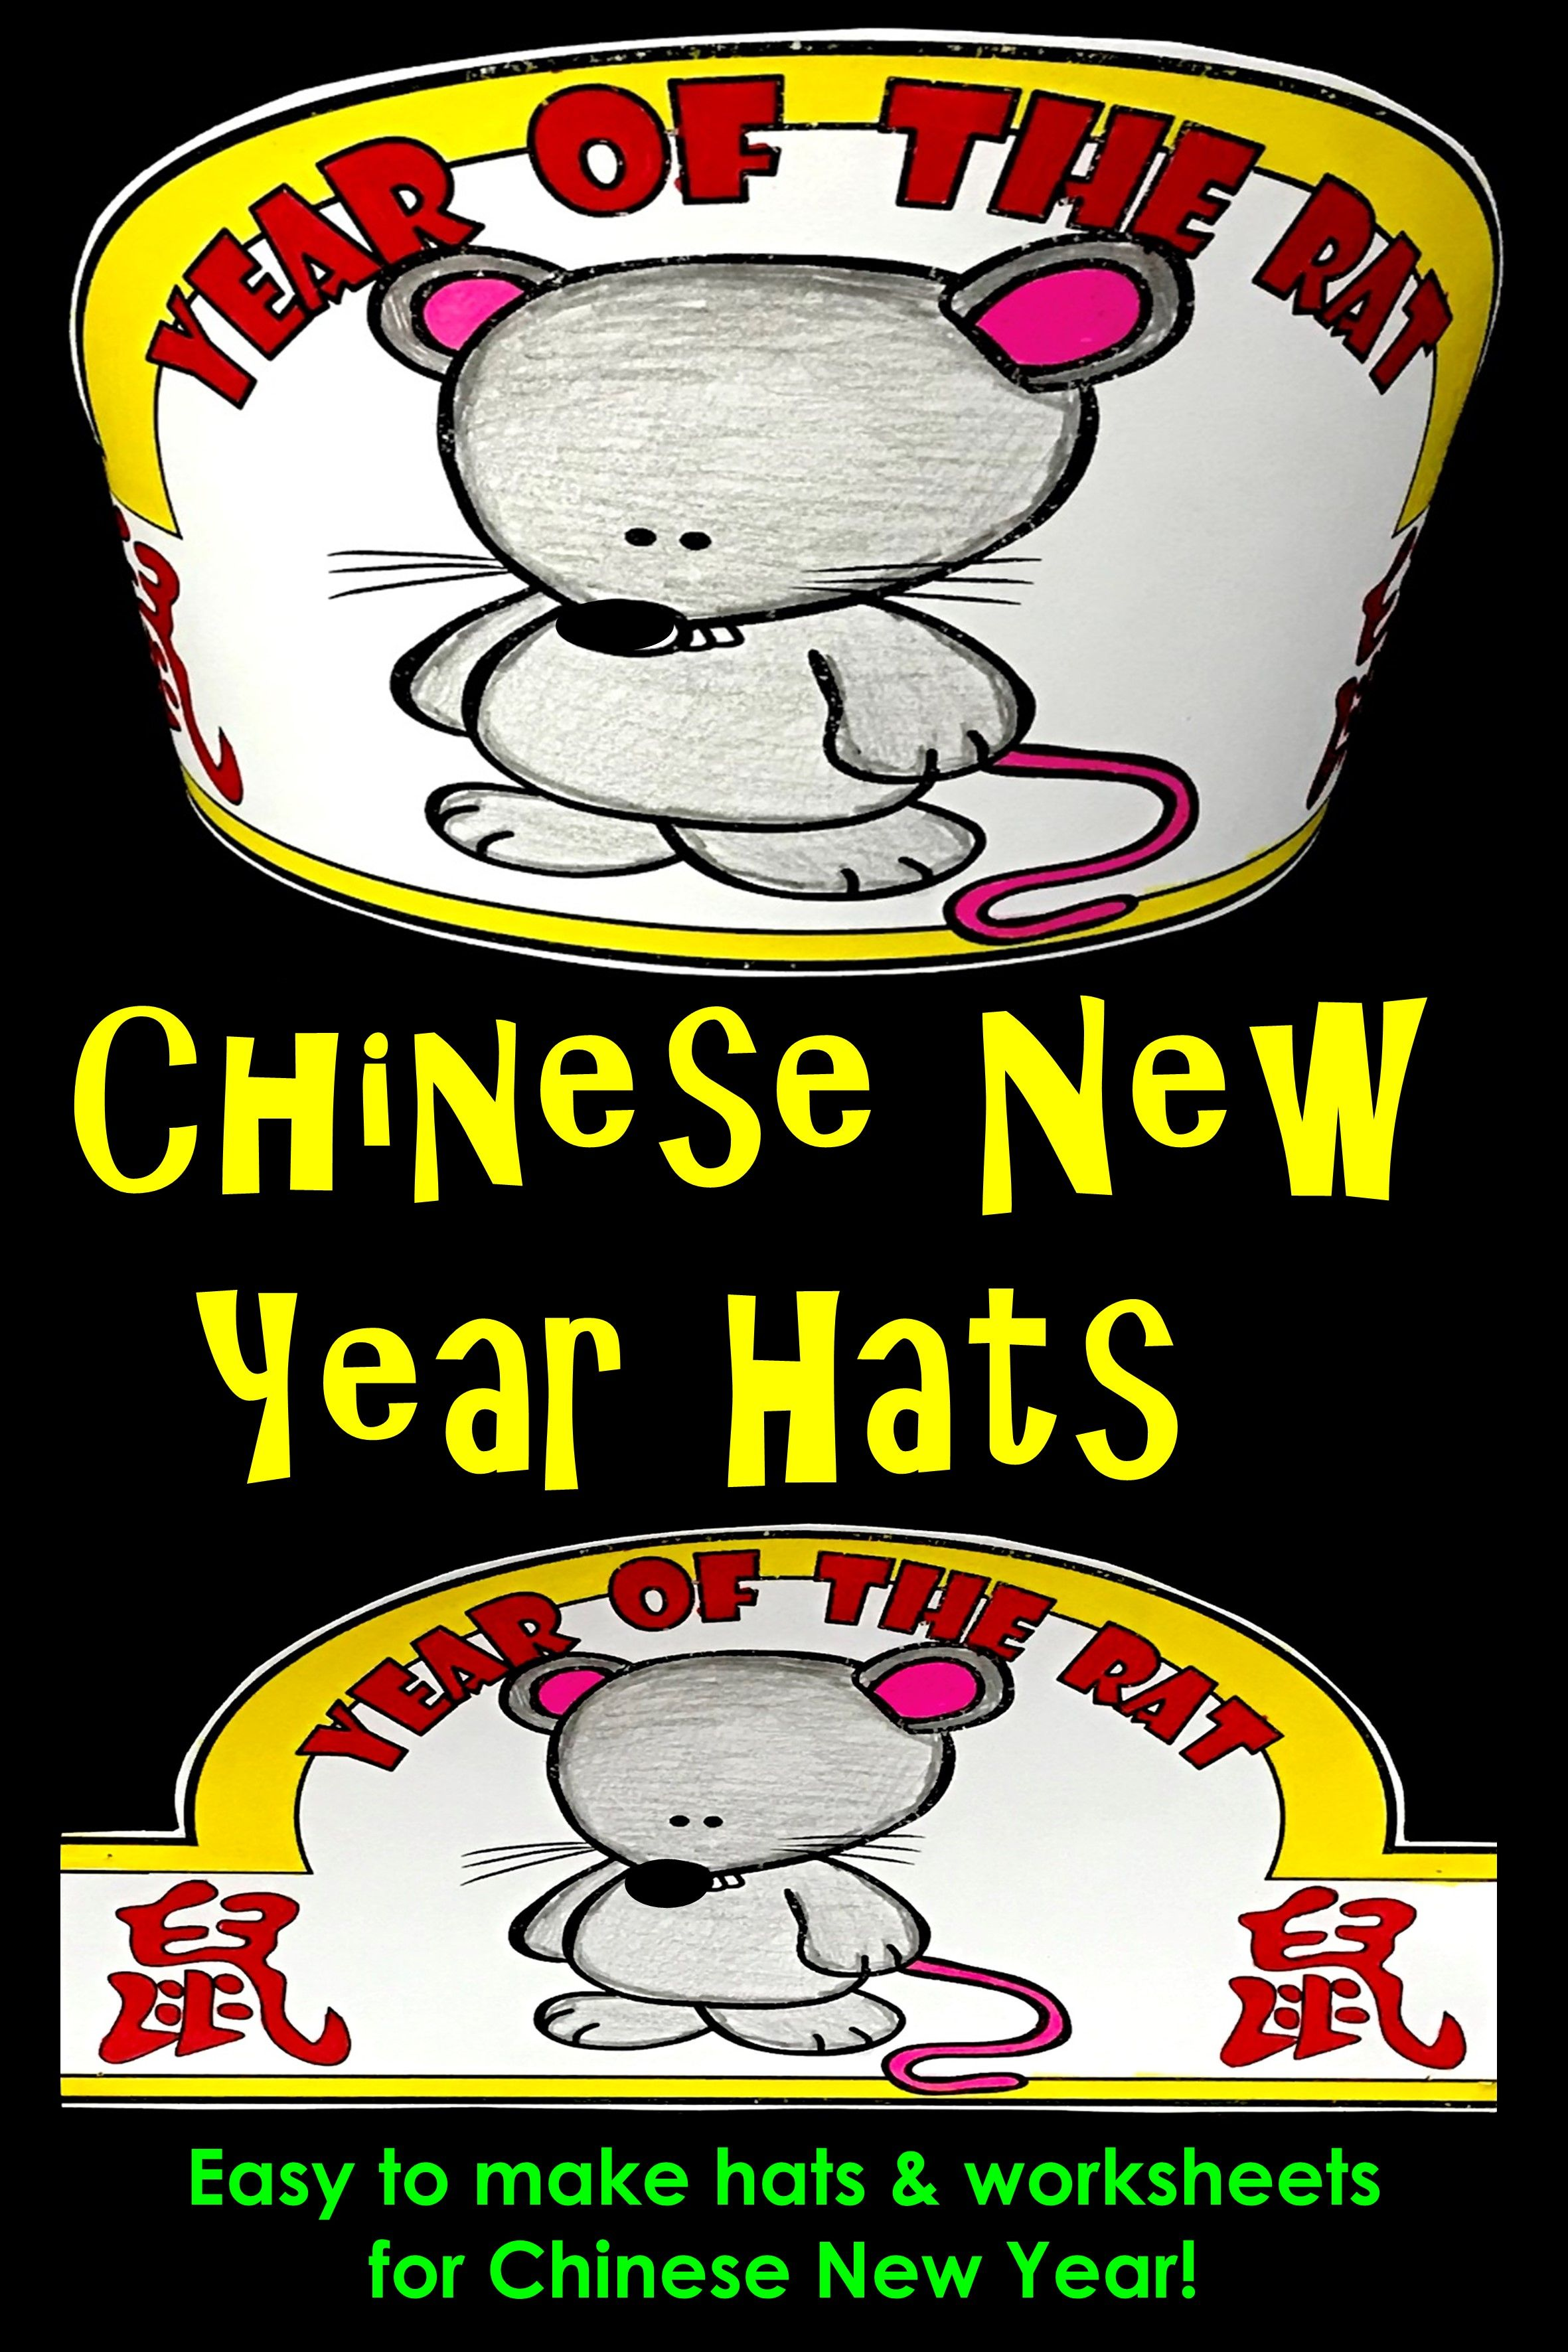 Chinese New Year Hats Year Of The Rat Hat